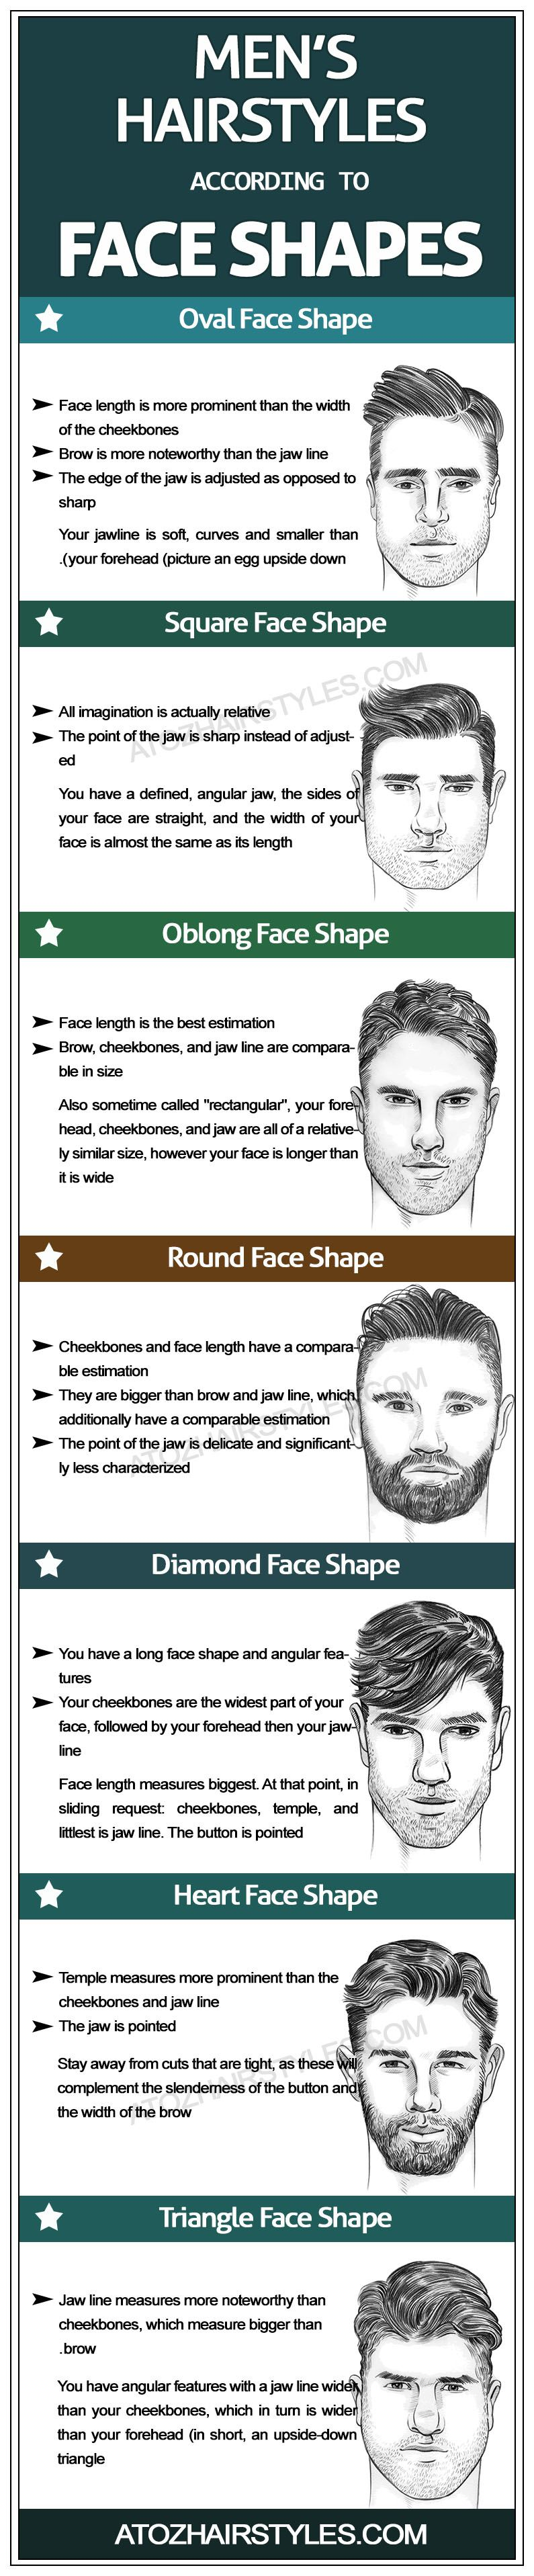 Haircut for men according to face shape hairstyles for men according to face shape  face shapes haircuts